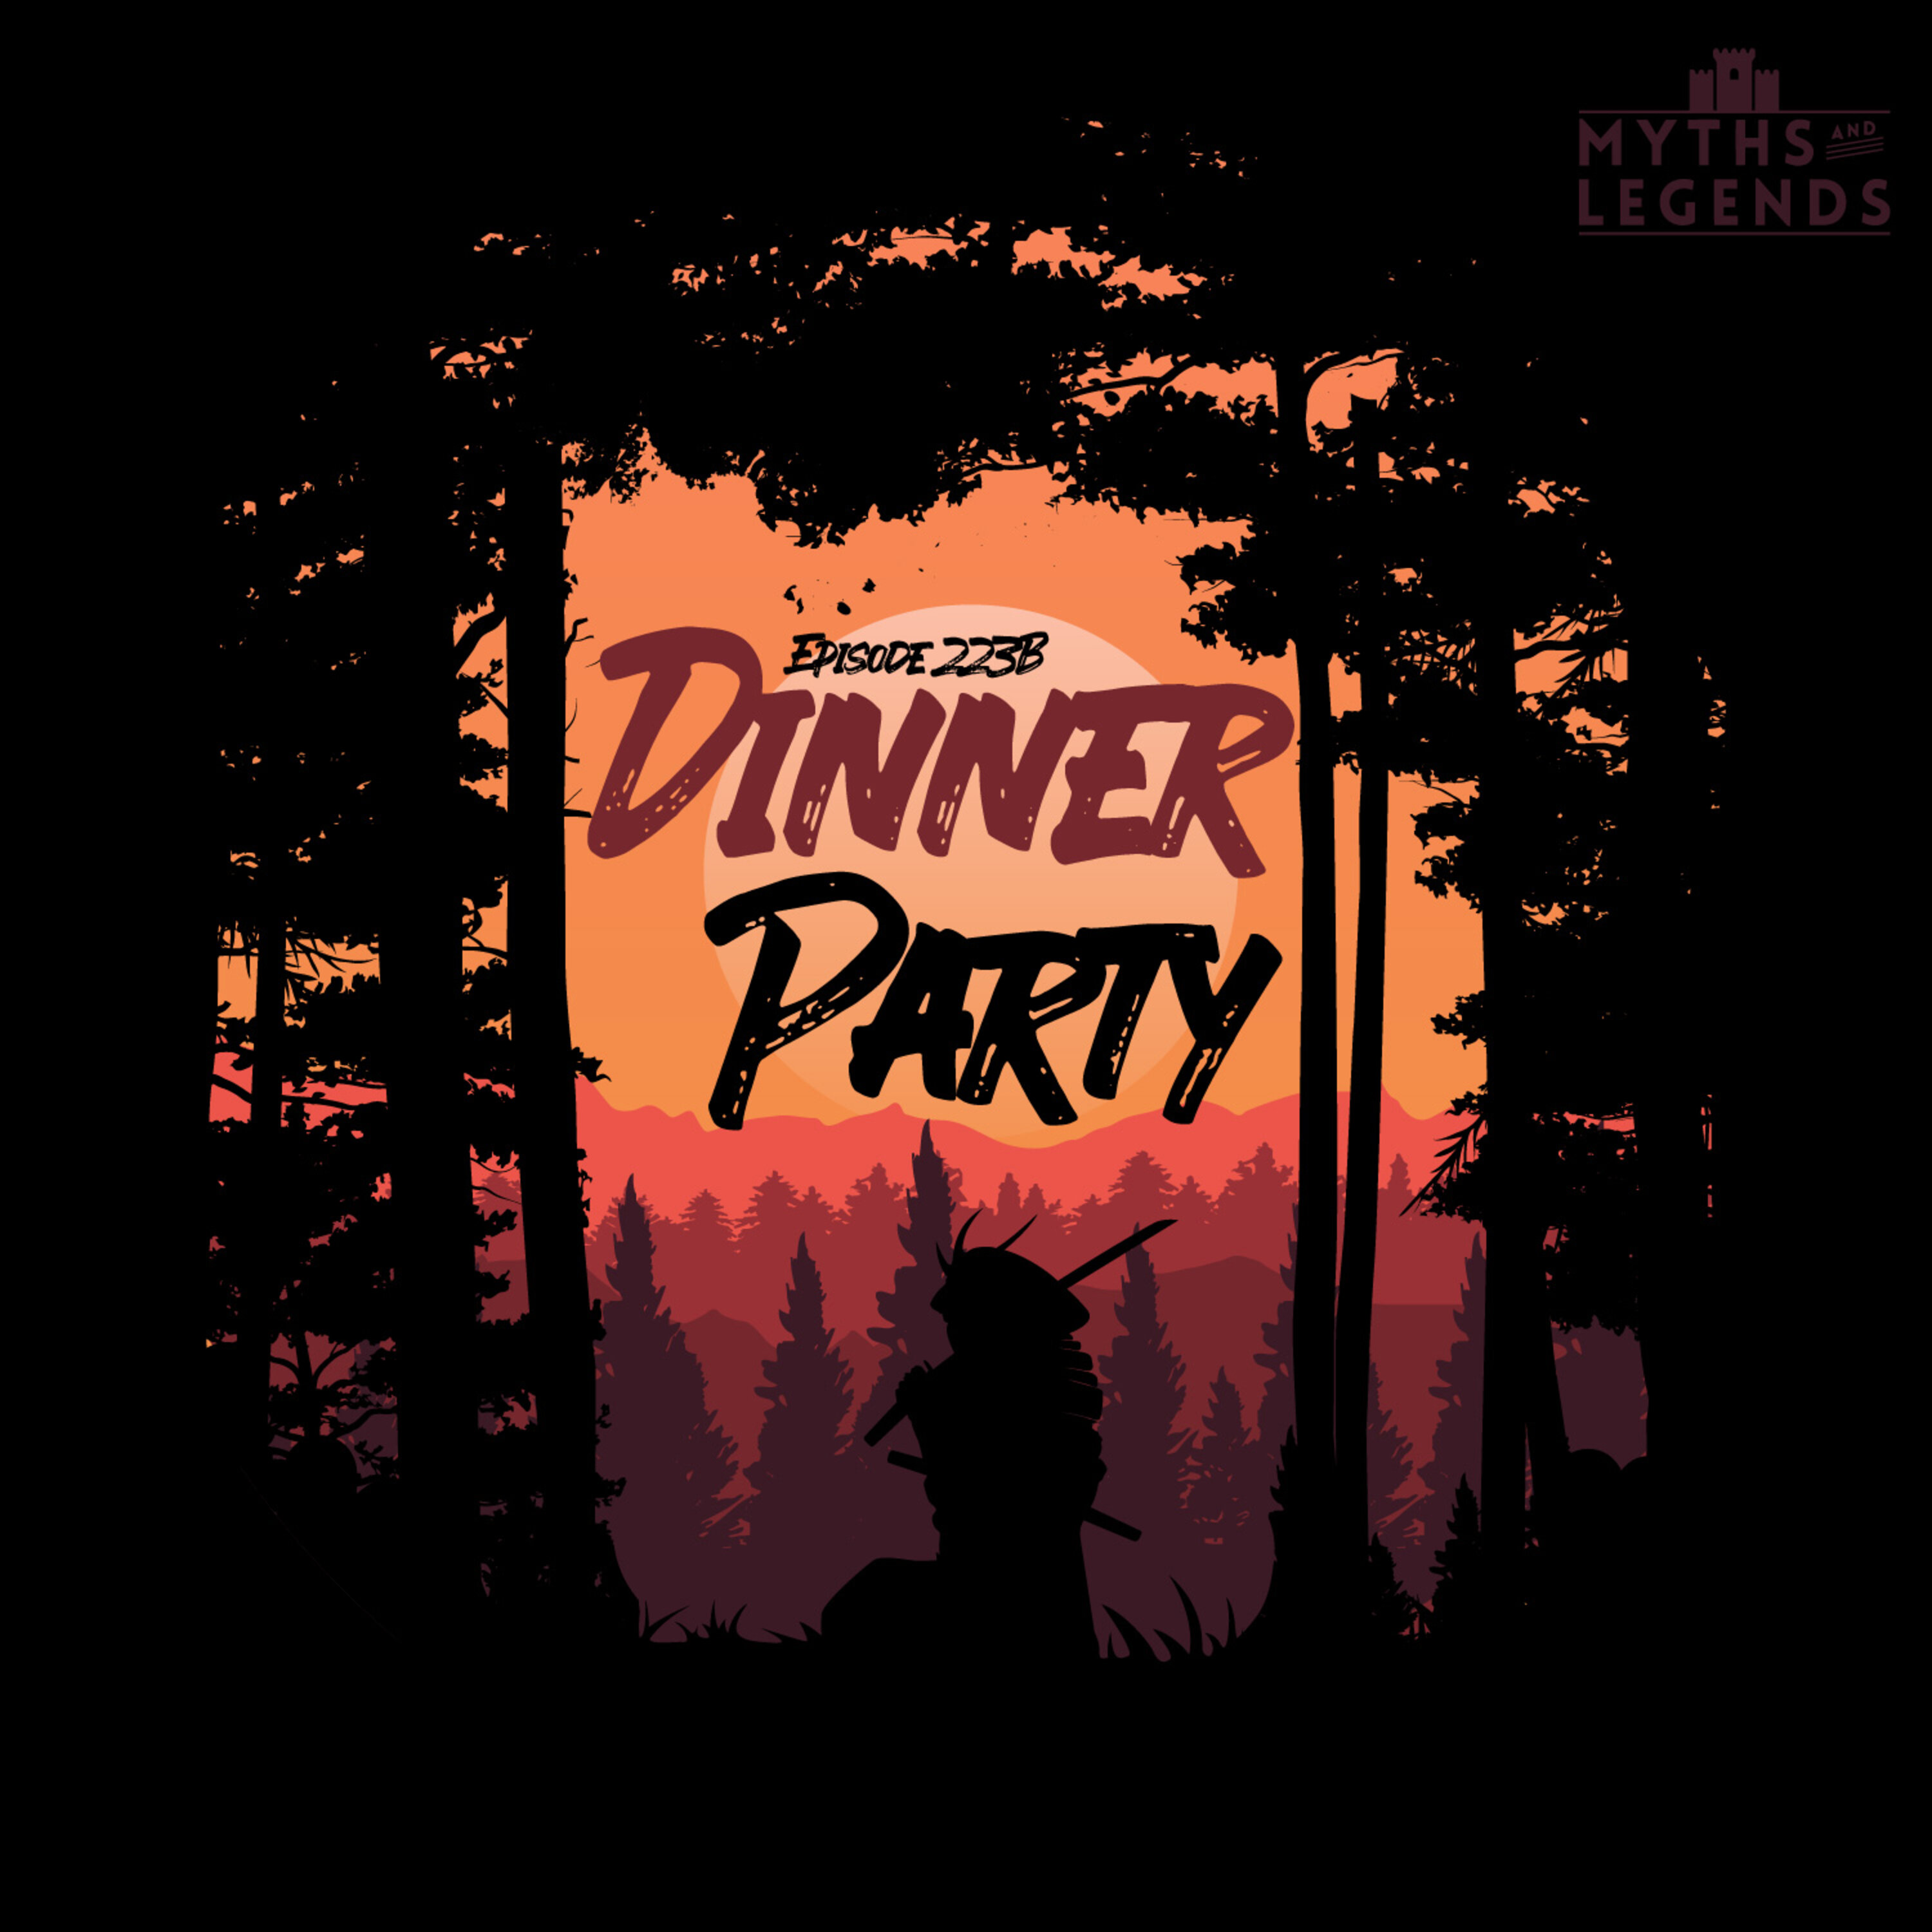 223B-Samurai Legends: Dinner Party